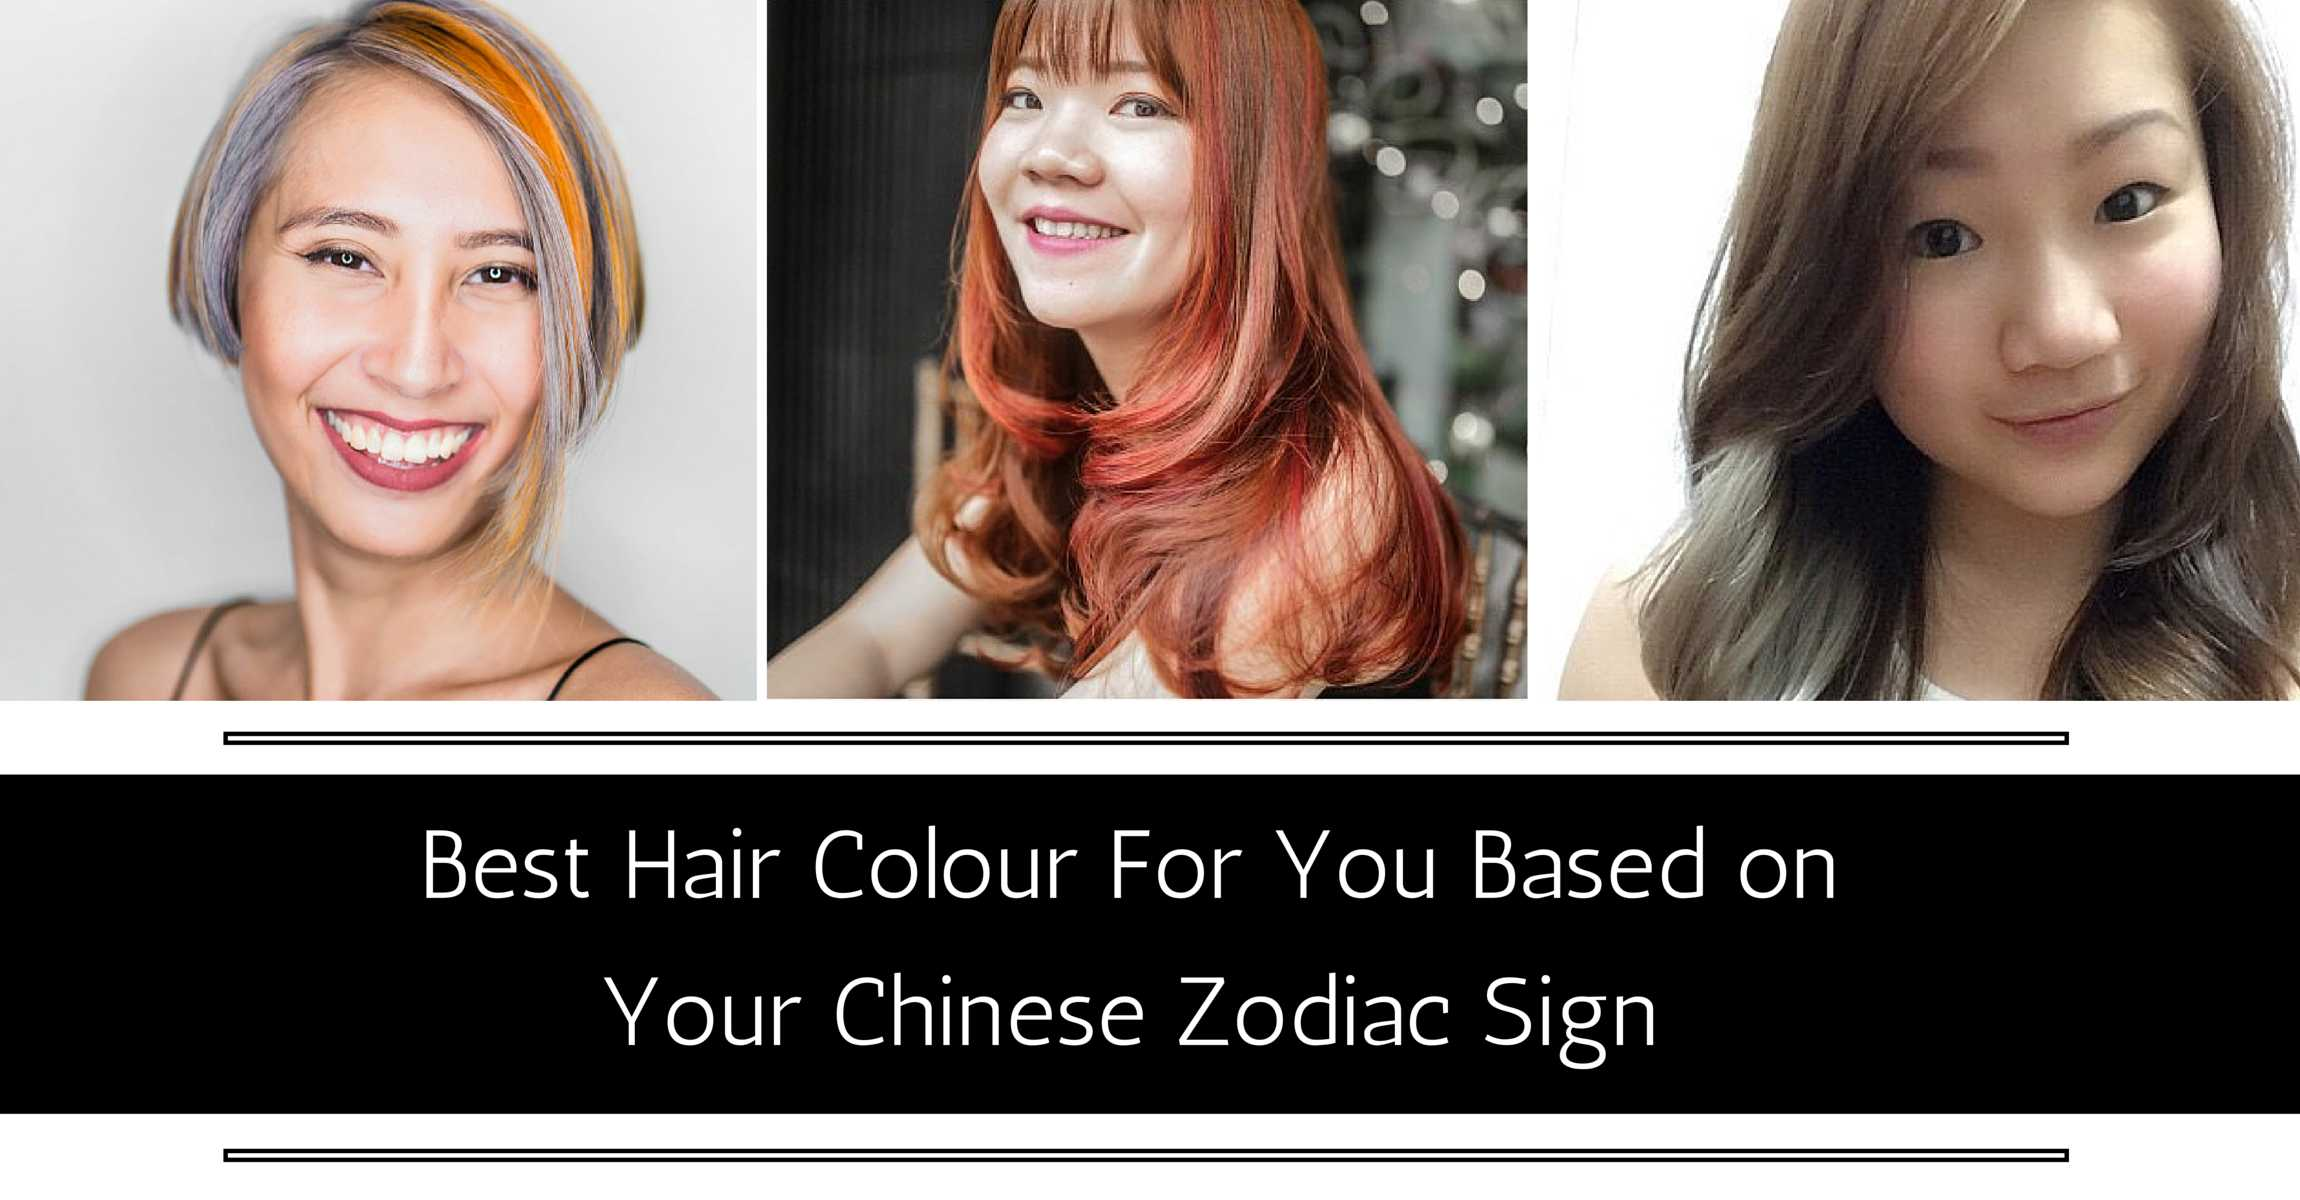 Best Hair Colour For Your Chinese Zodiac Sign